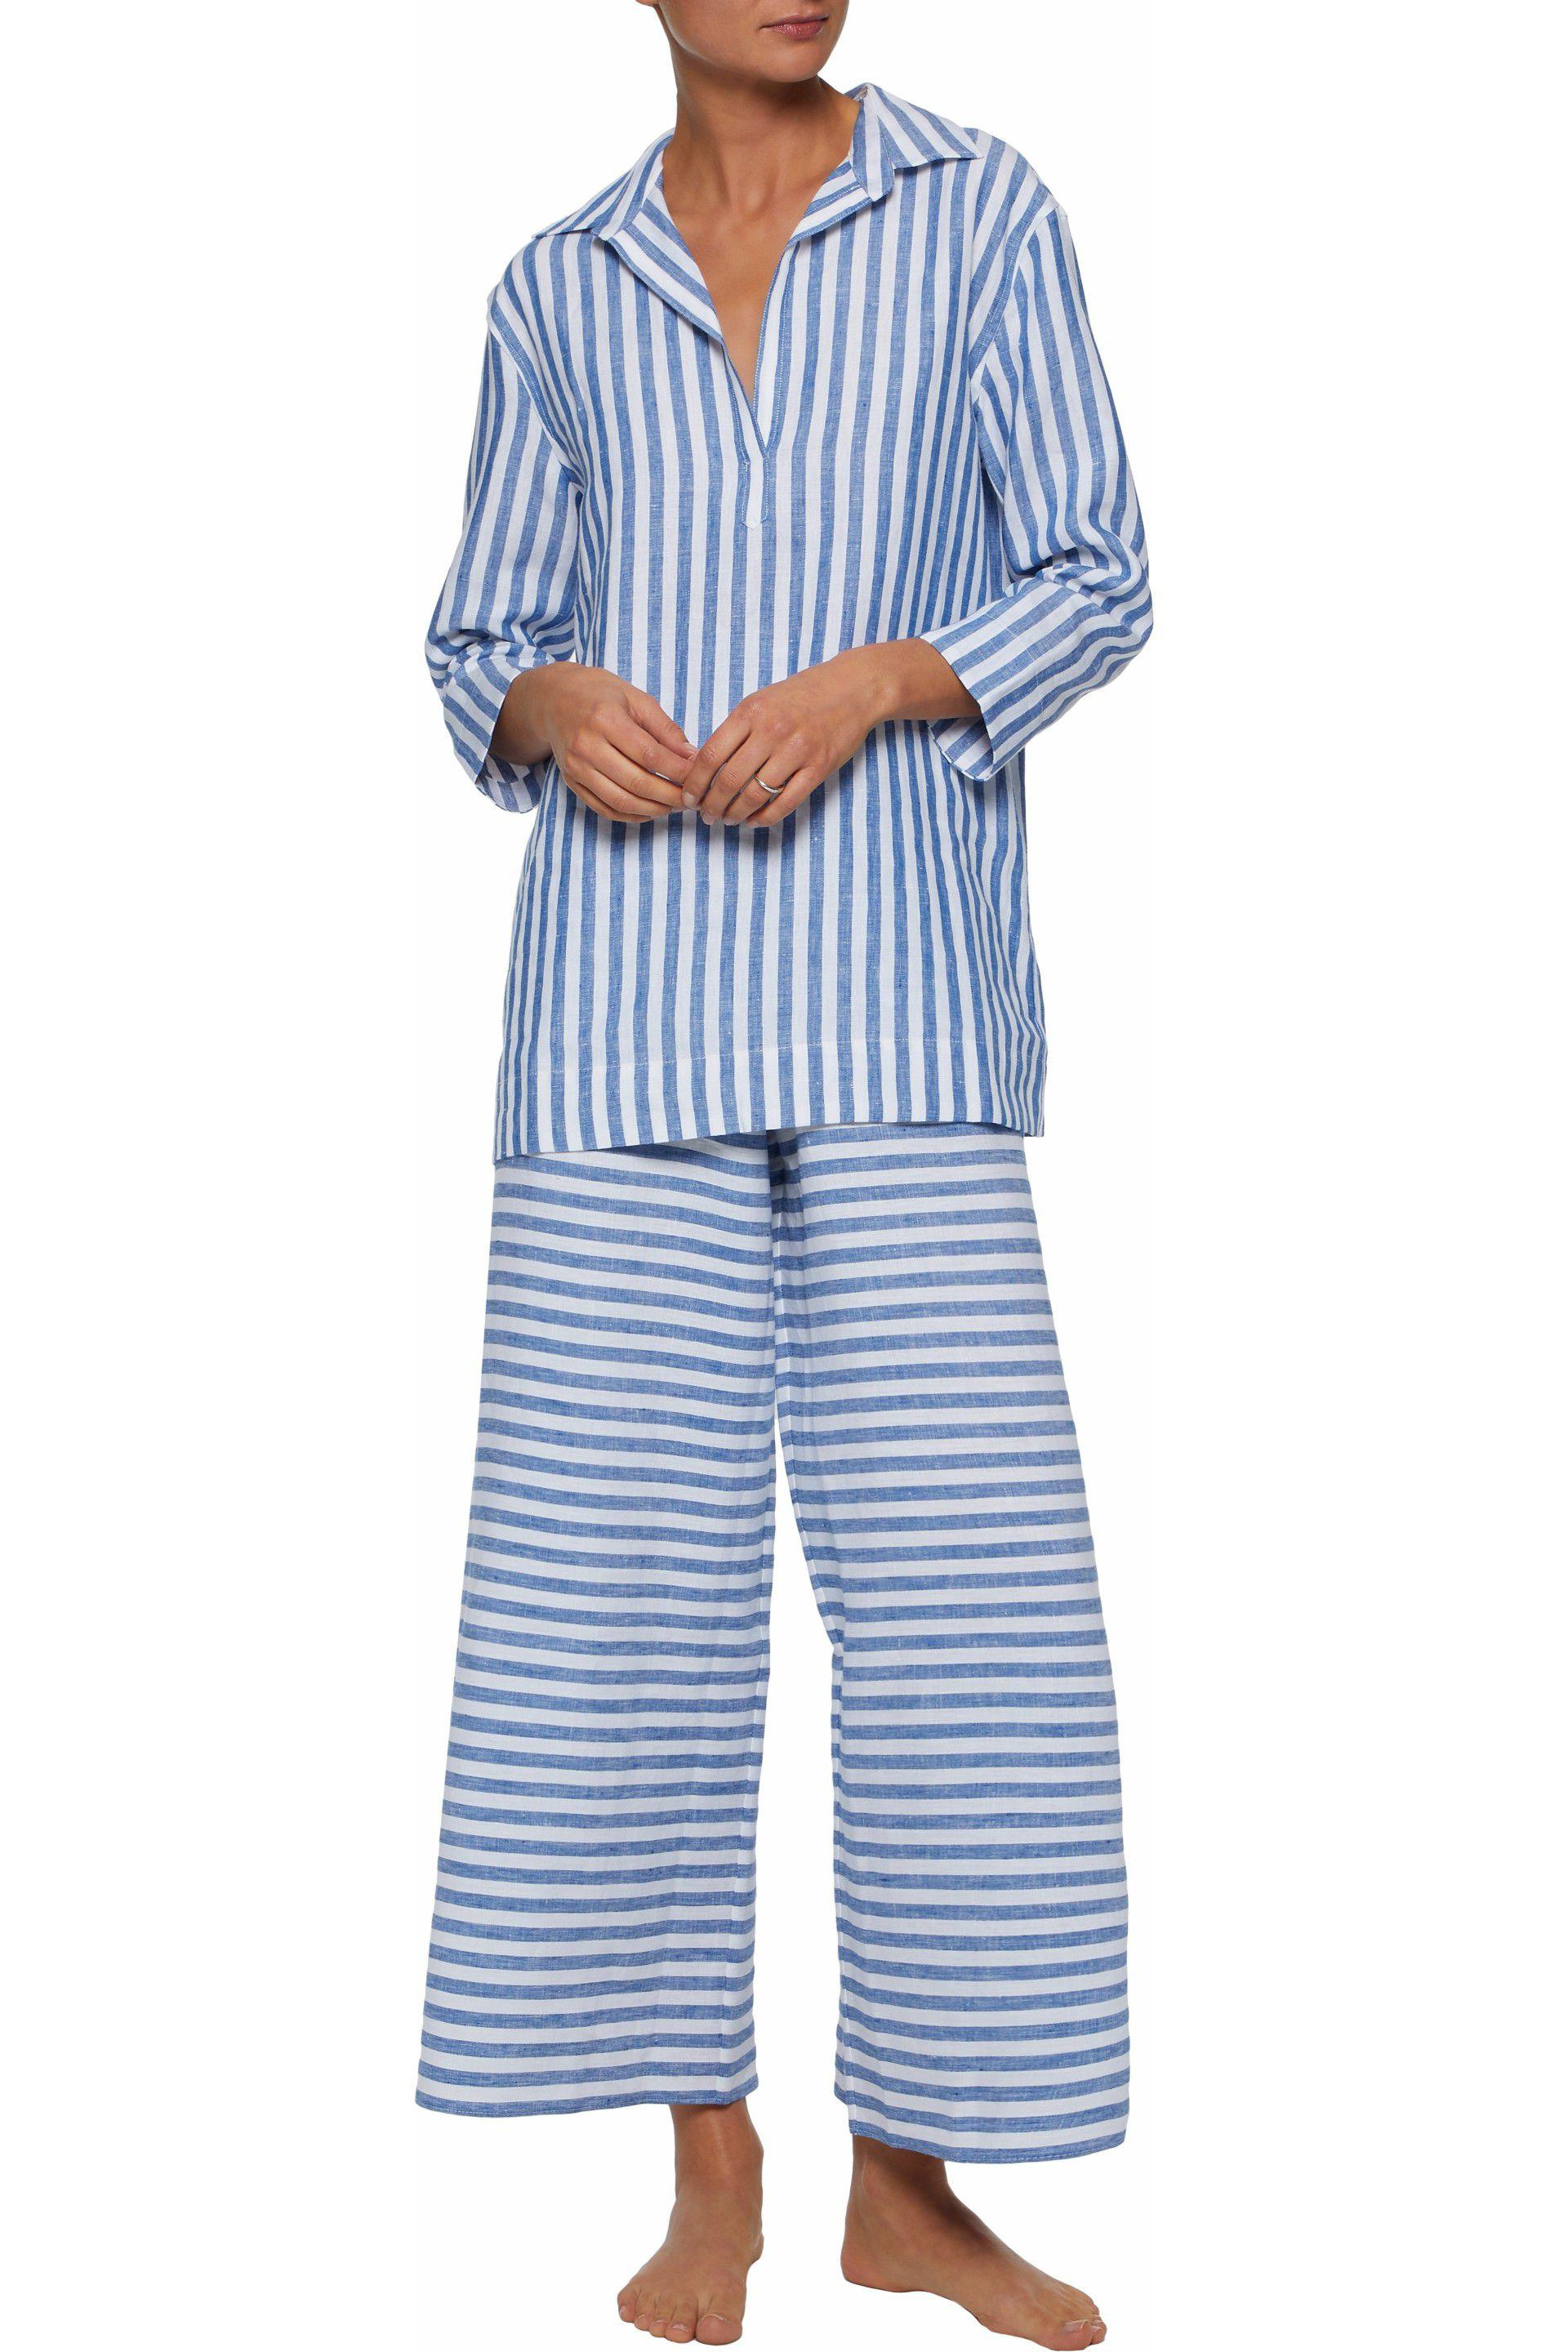 Sleepy Jones Woman Striped Linen Pajama Pants Light Blue Size XL Sleepy Jones Order Cheap Online AzWKAP